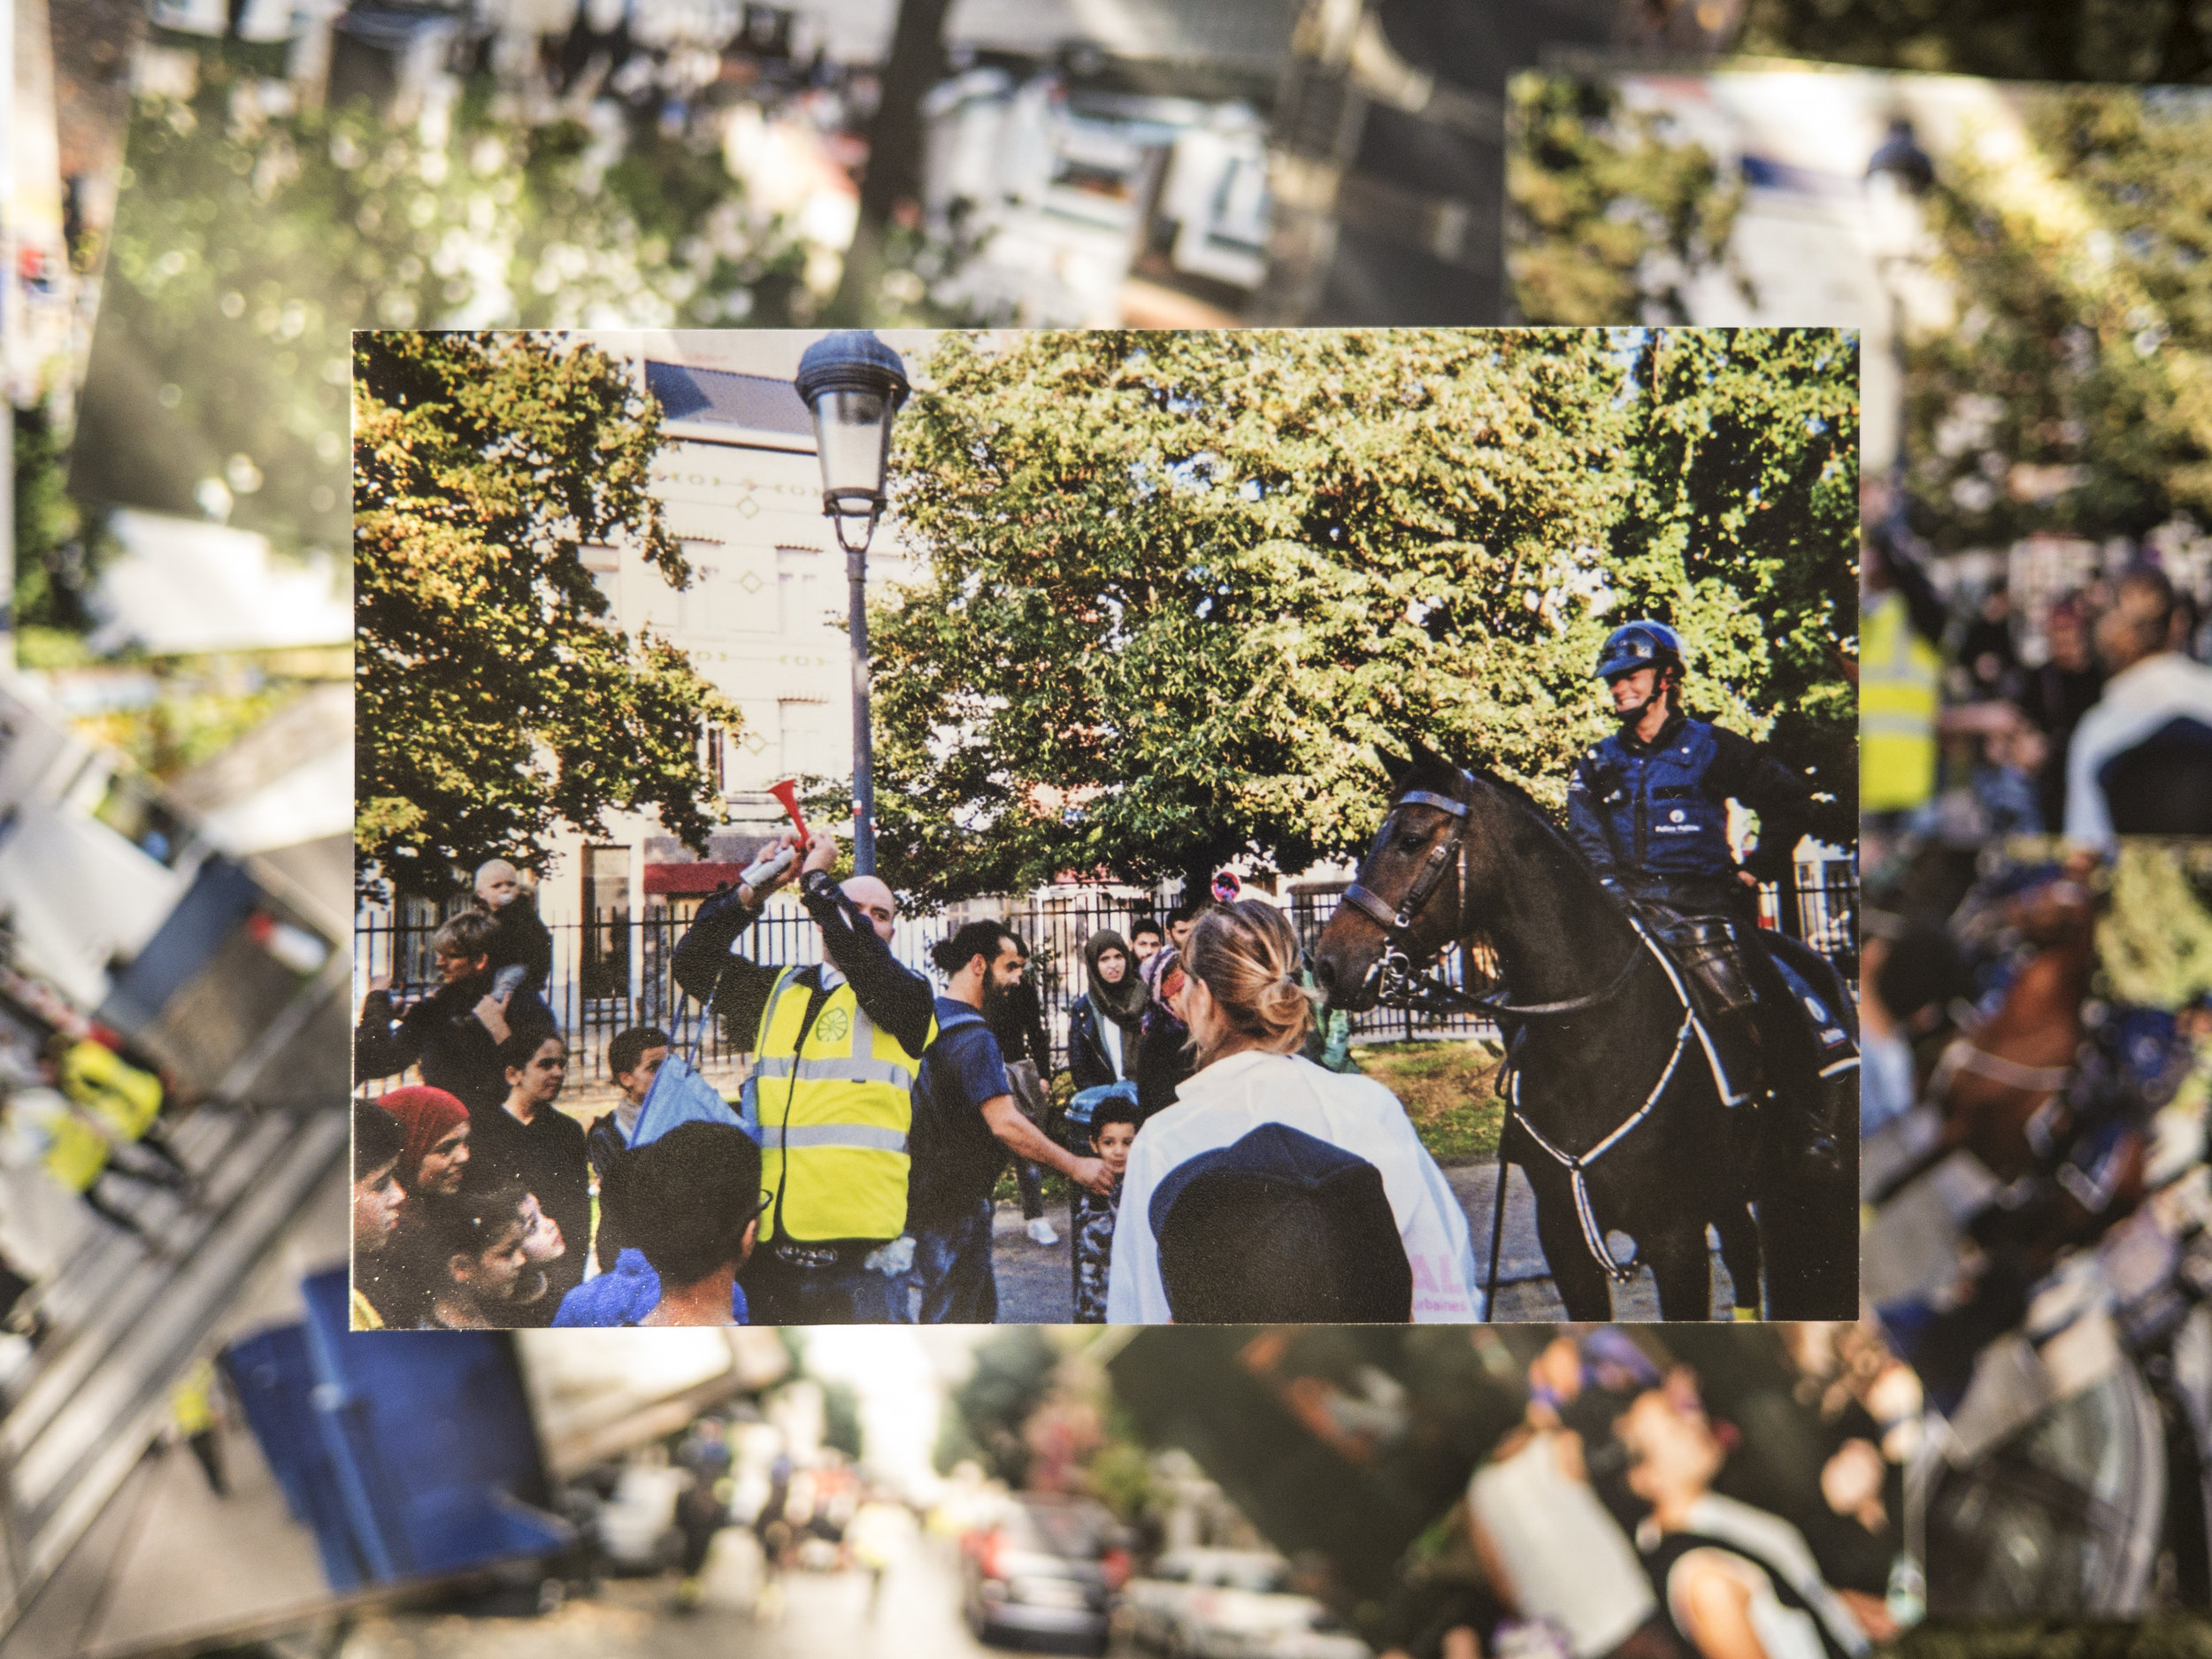 In 2017 Eero Yli-Vakkuri performed together with the Trans-Horse group at the Signal #6 festival (organised by CIFAS) in Brussels and collaborated with the Belgian Federal Police Mounted Unit. Image courtesy of the artist.